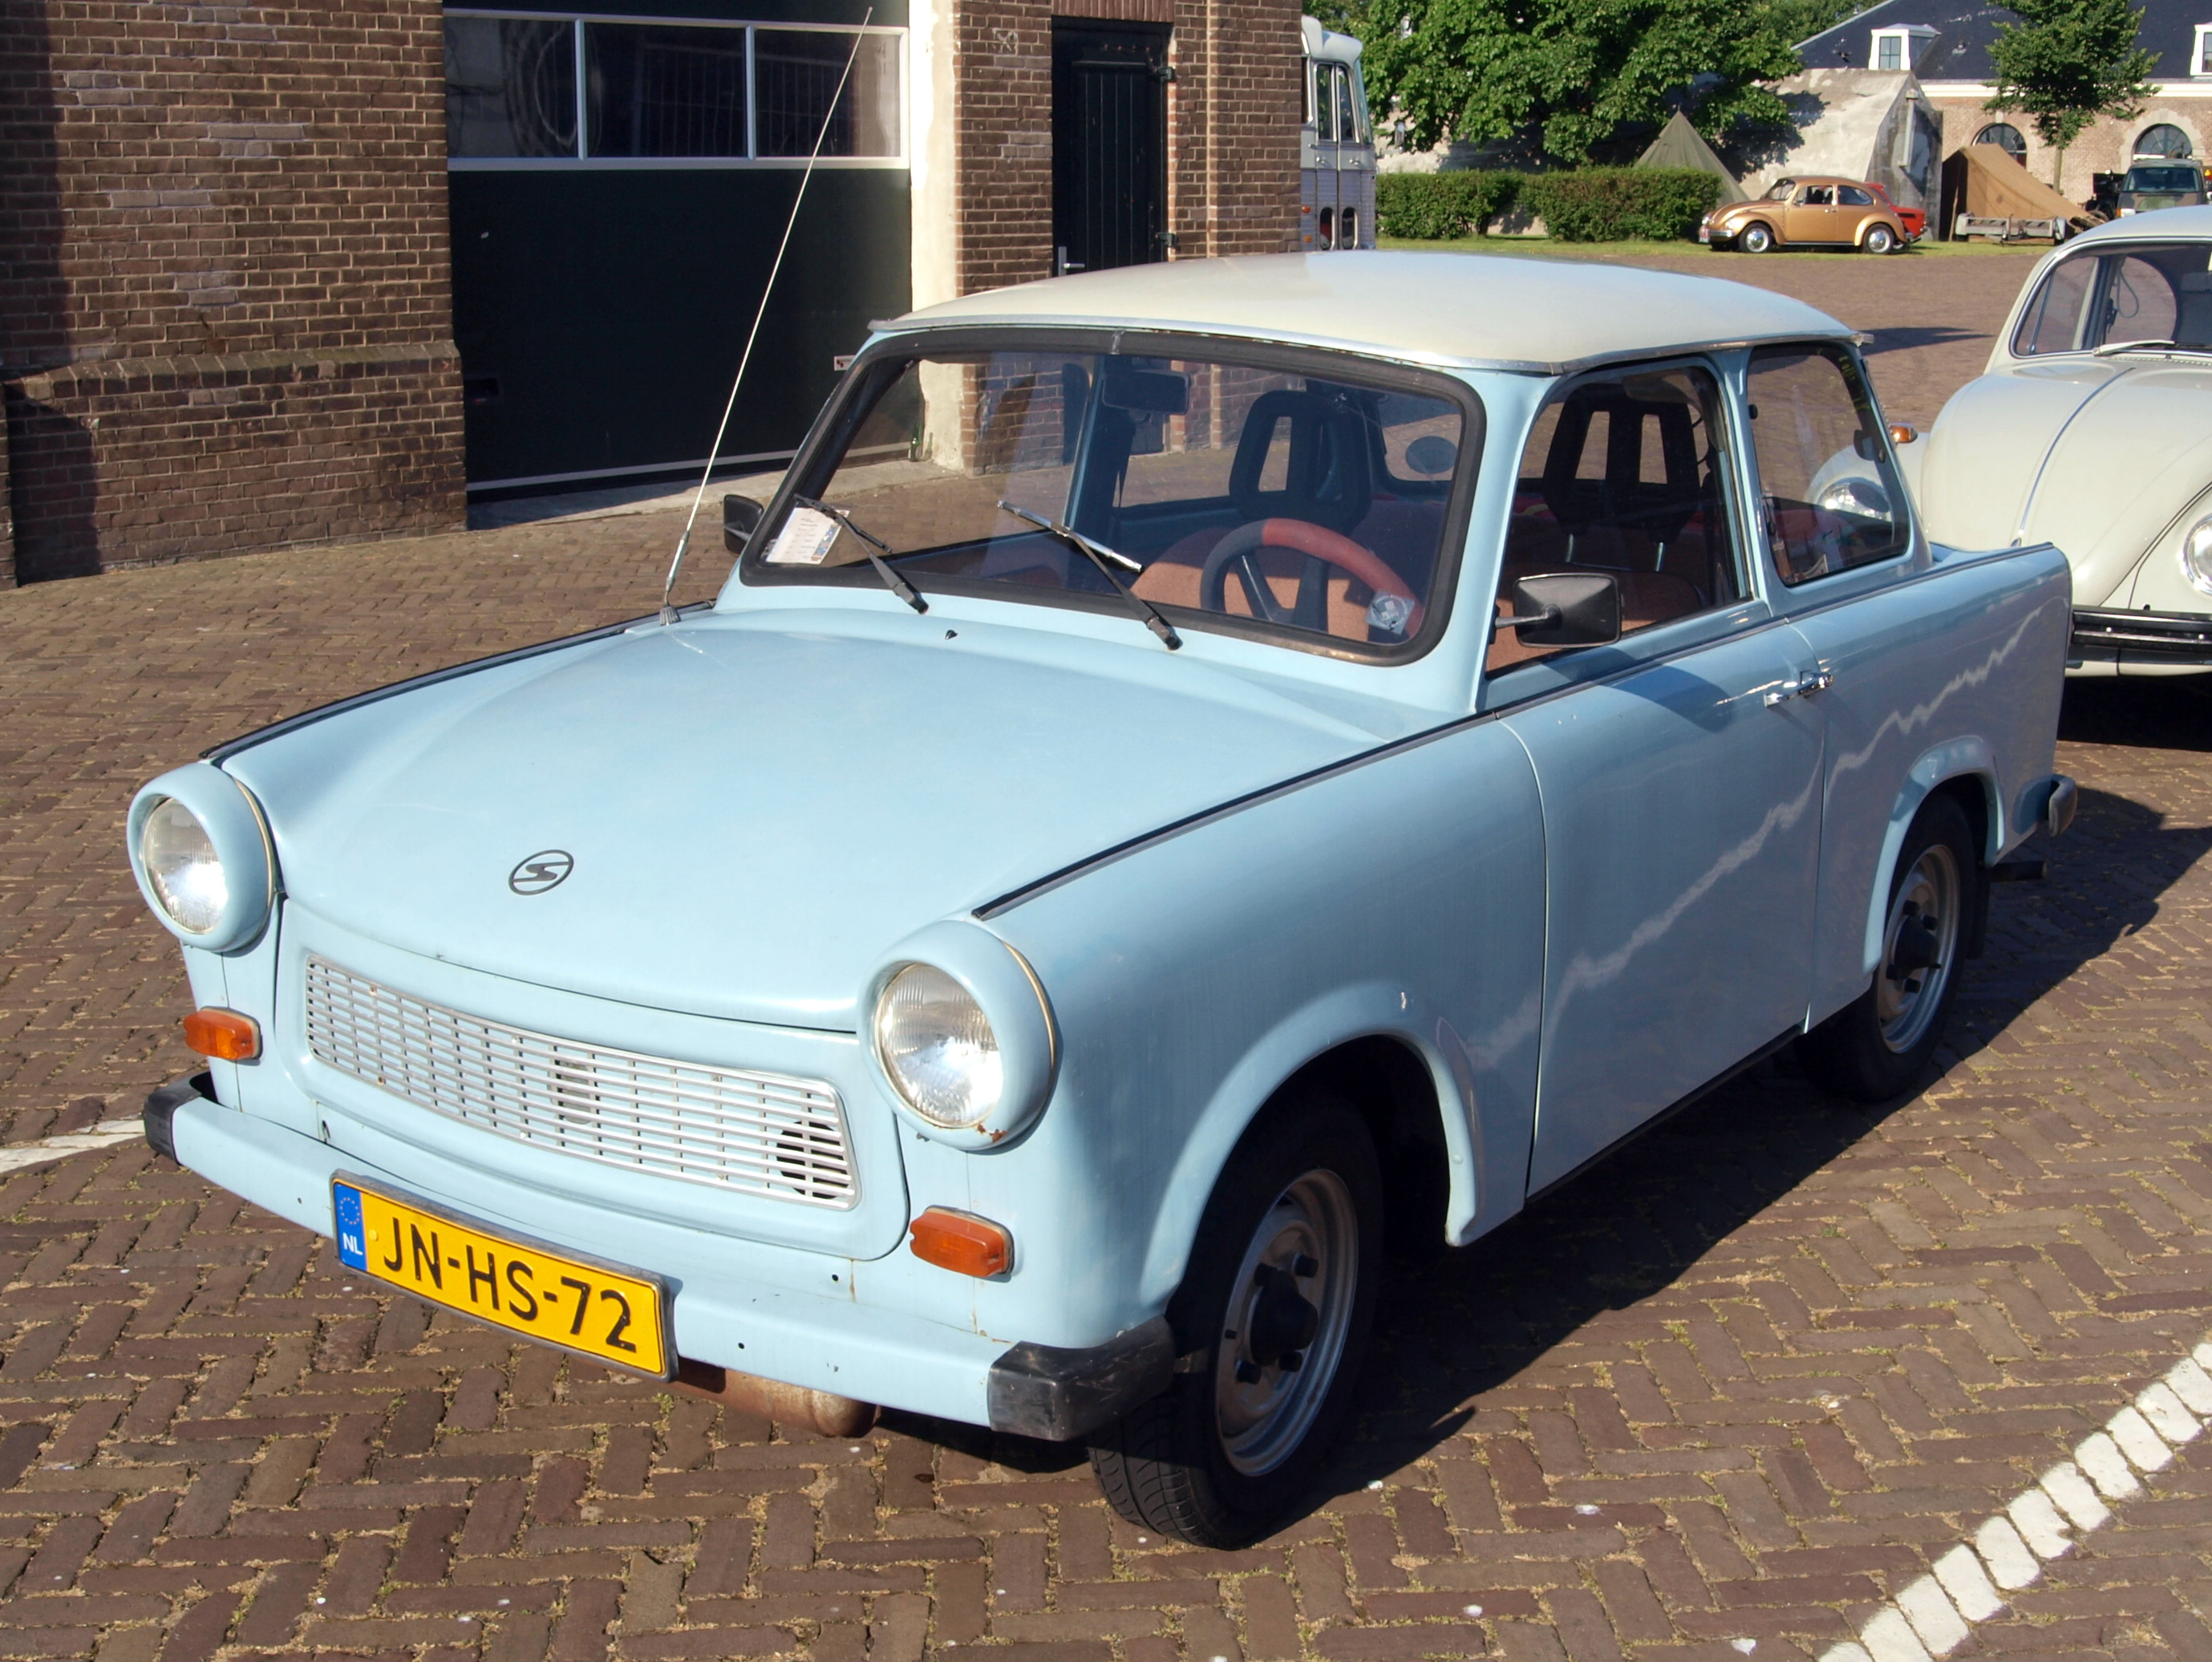 file trabant 601 1984 dutch licence registration jn hs 72 pic3 jpg wikimedia commons. Black Bedroom Furniture Sets. Home Design Ideas